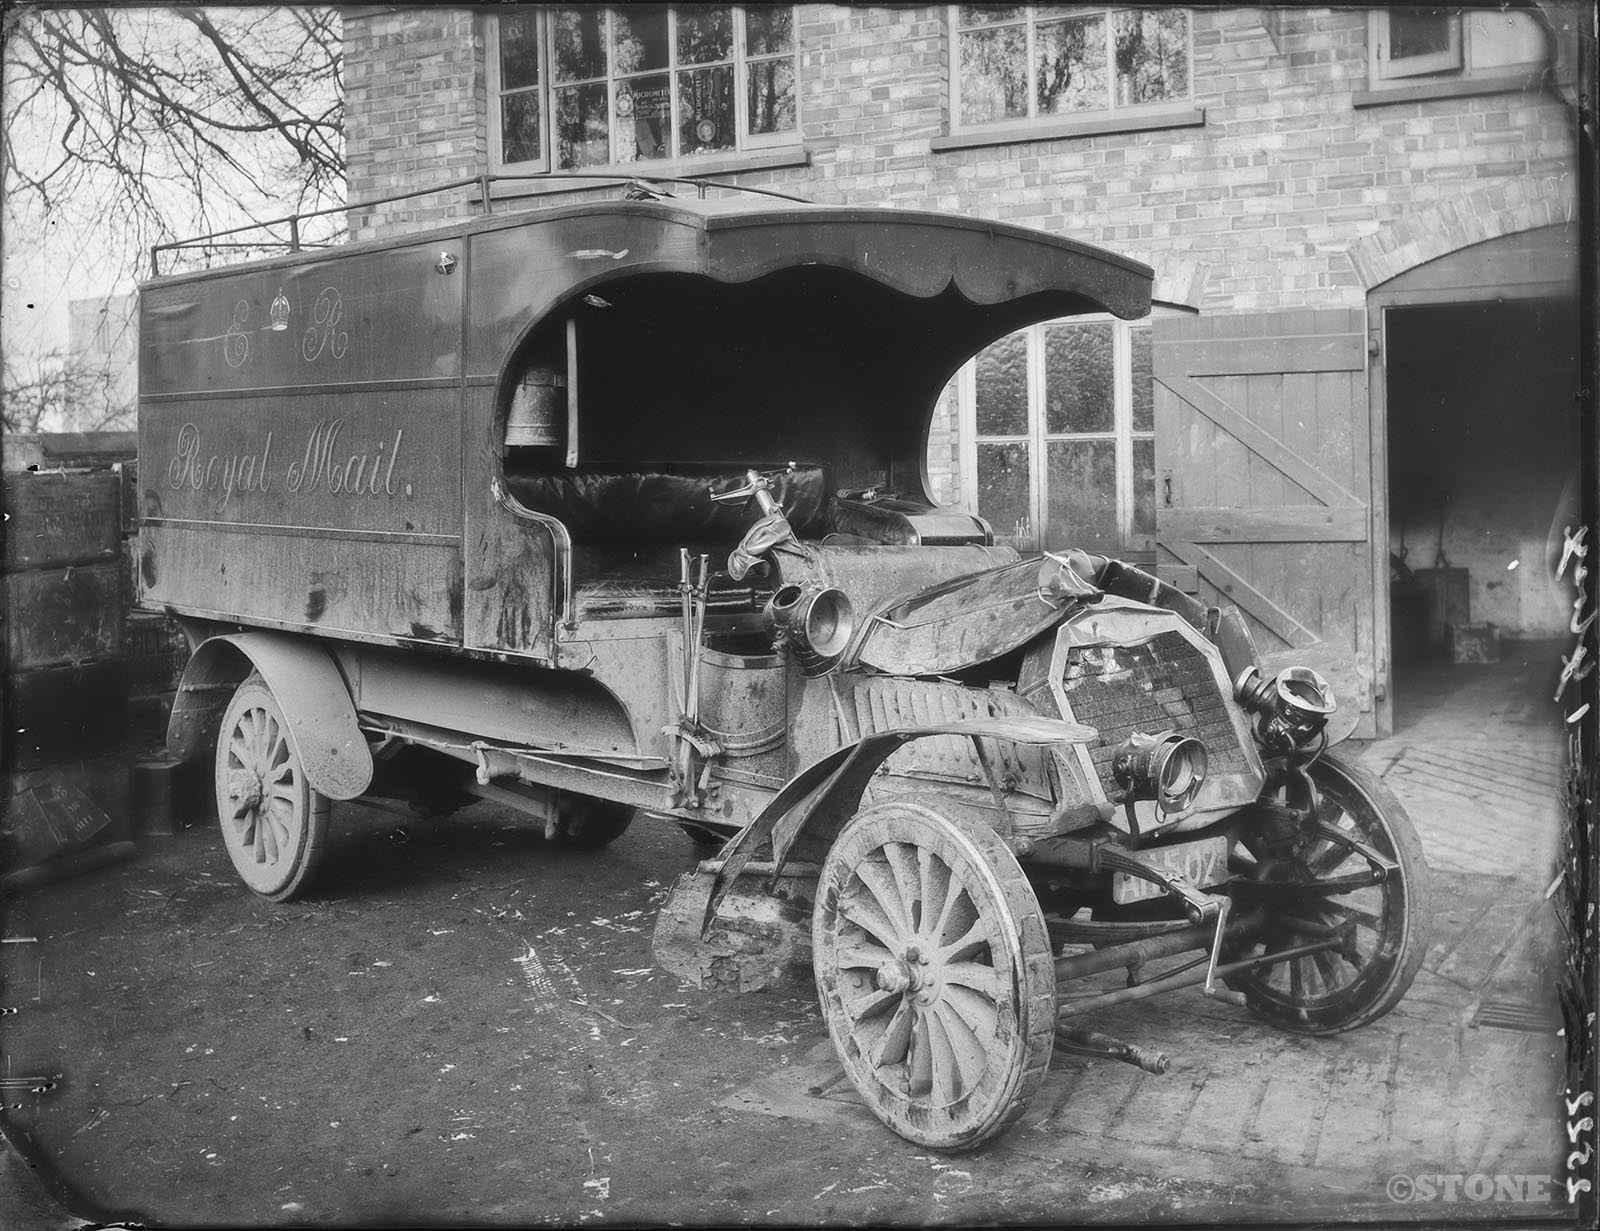 Herbert Thomas Cave - glass plate Royal Mail van